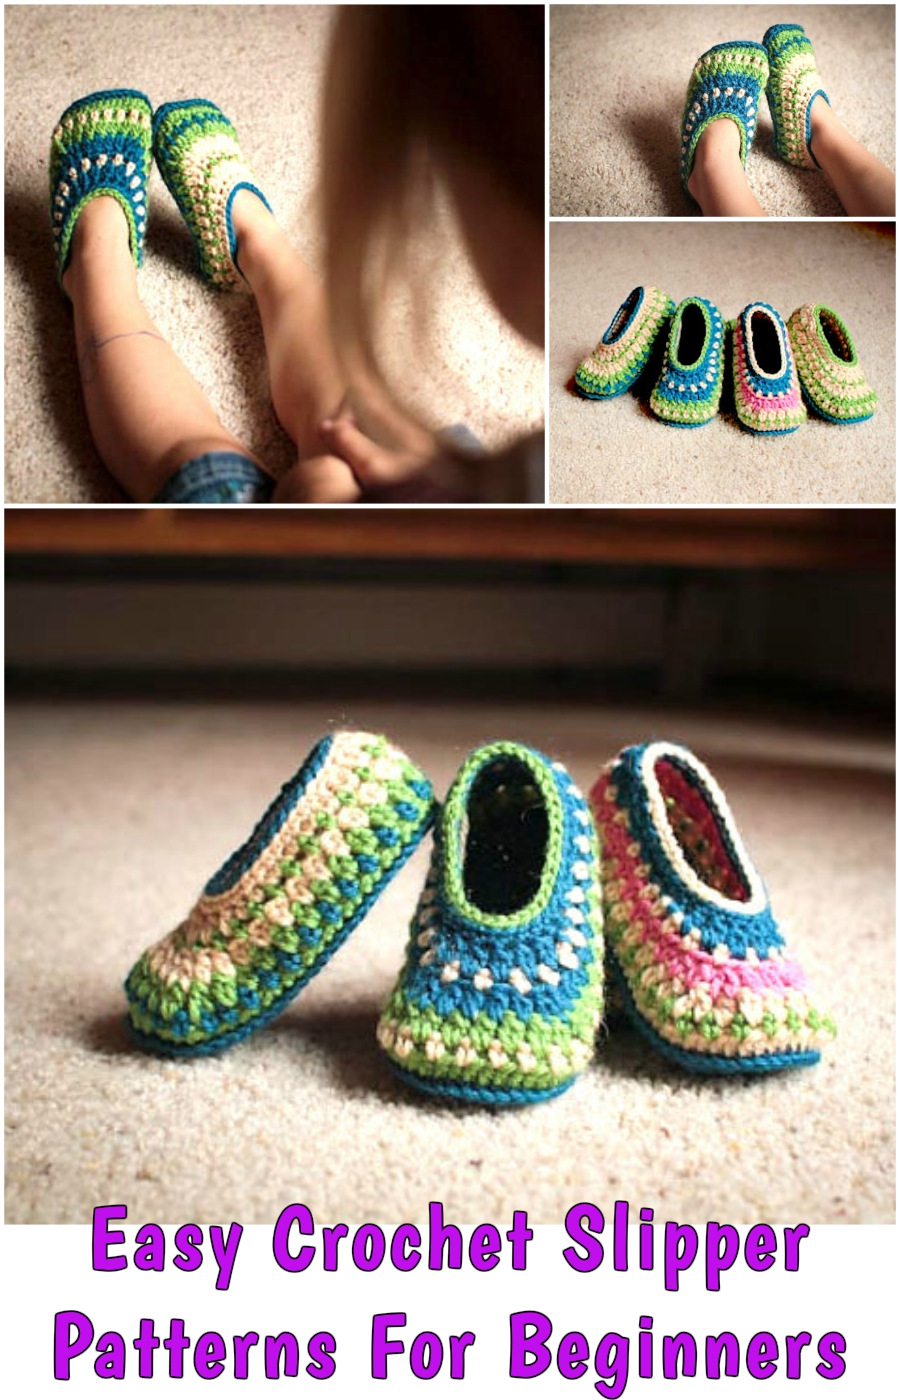 Easy Crochet Slipper Patterns For Beginners The Galilee Slipper